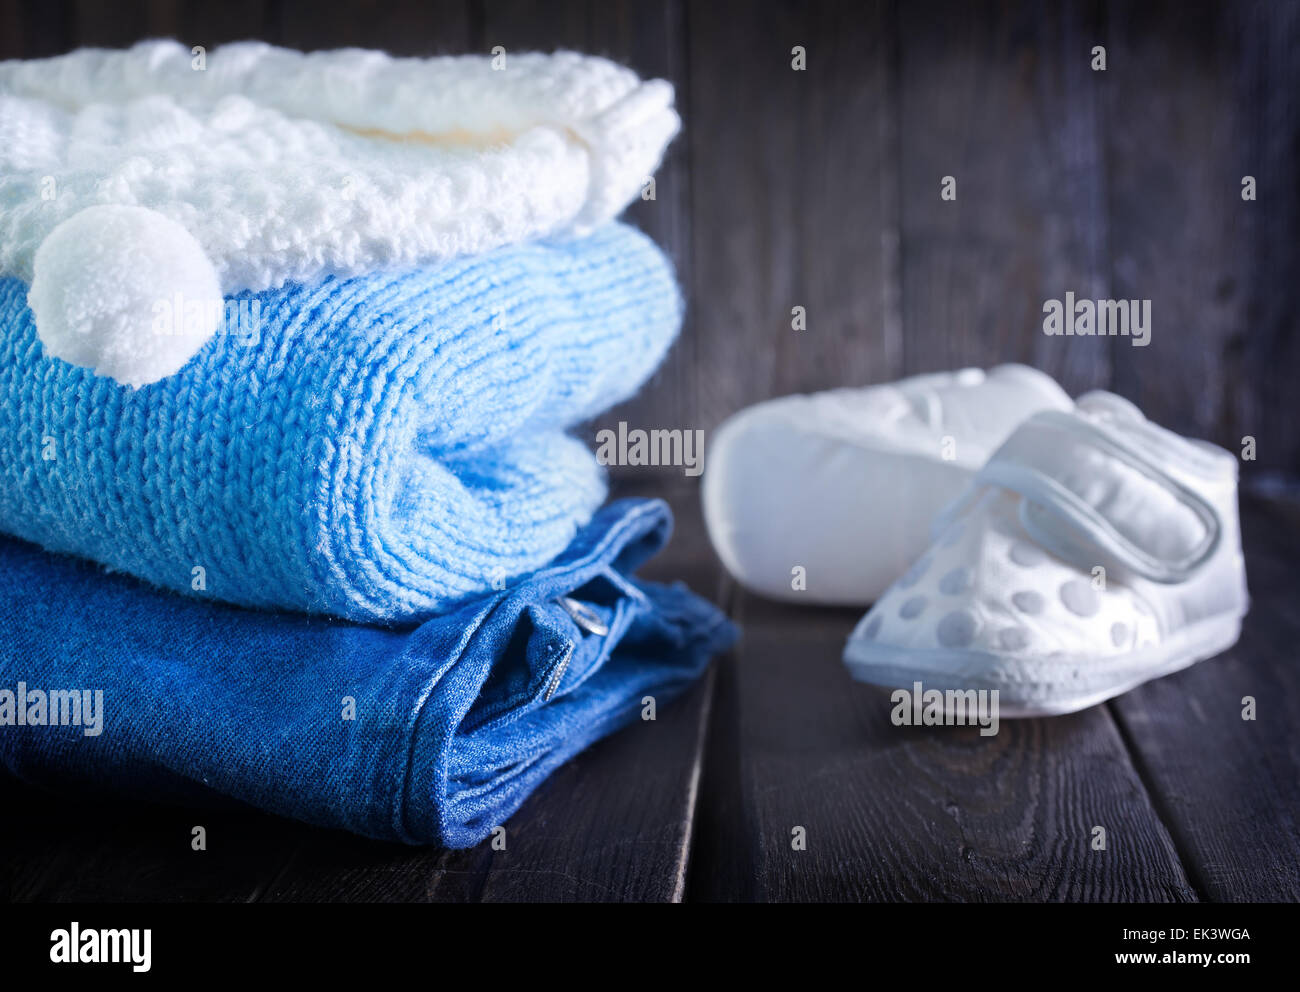 baby clothes for boy on the wooden table - Stock Image